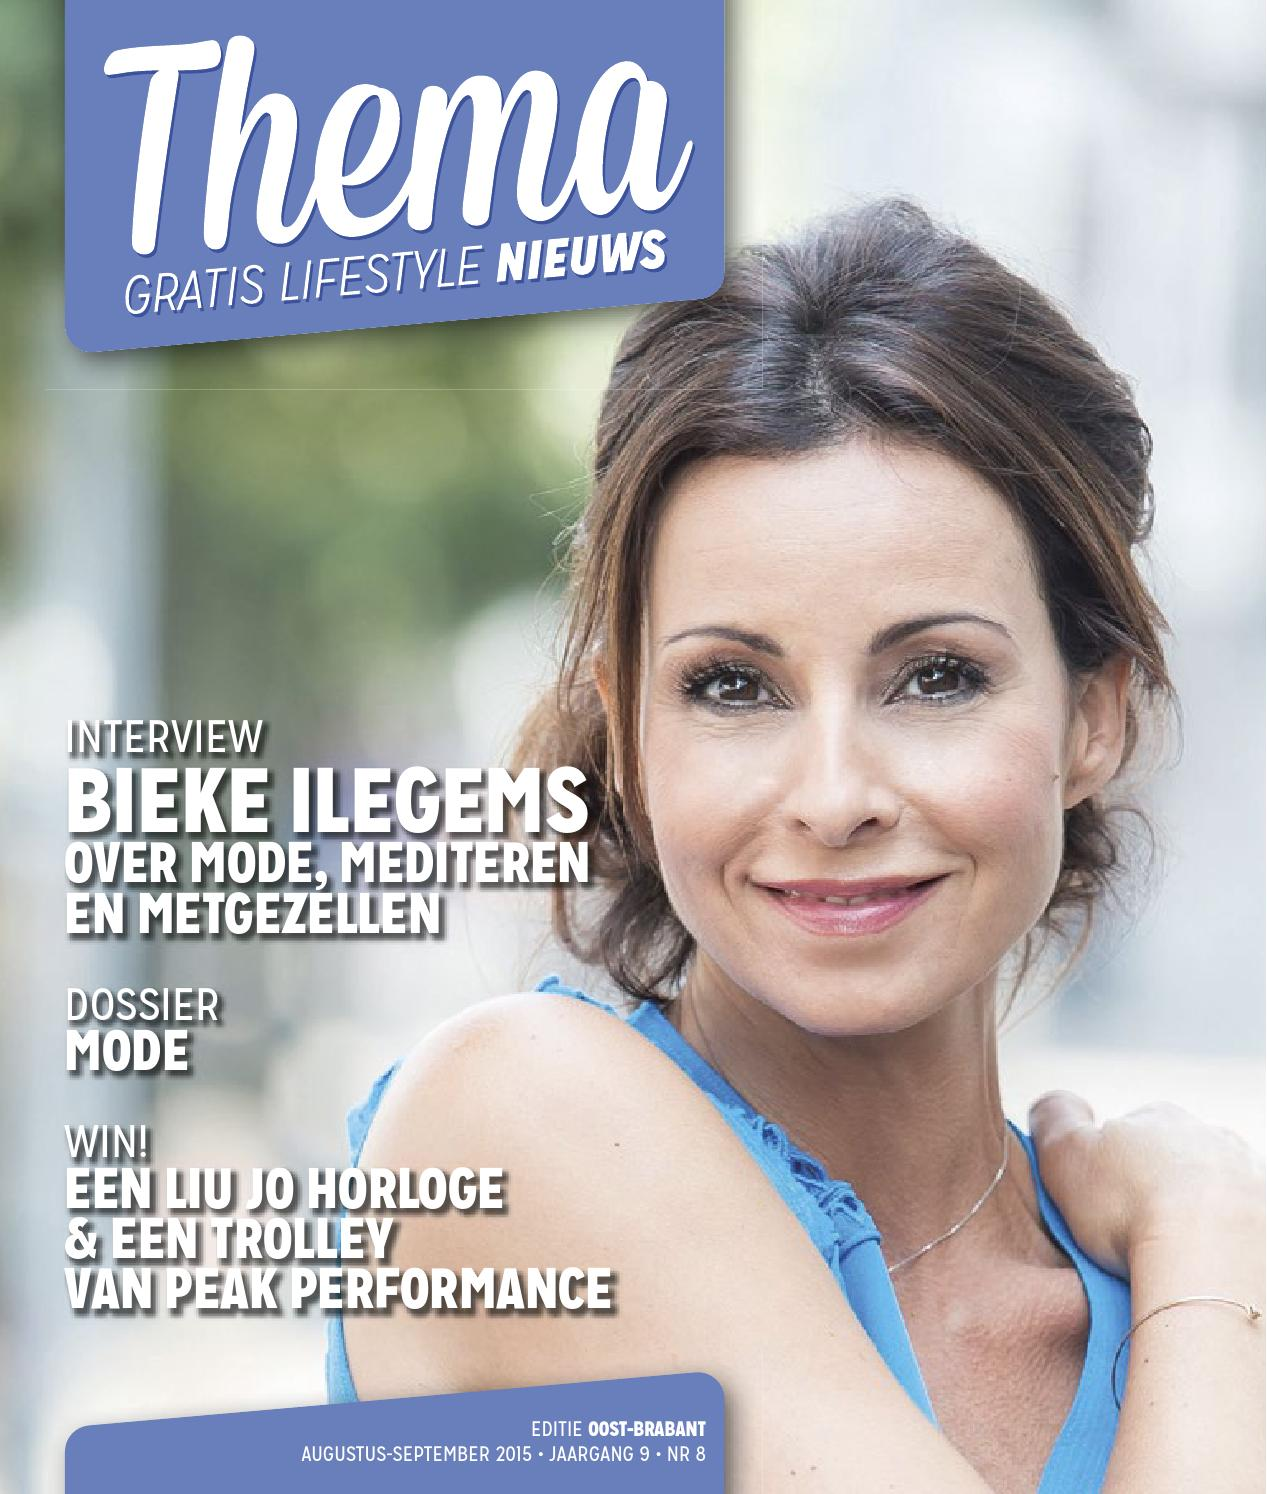 Thema nieuws mode 2014 by primetime   issuu